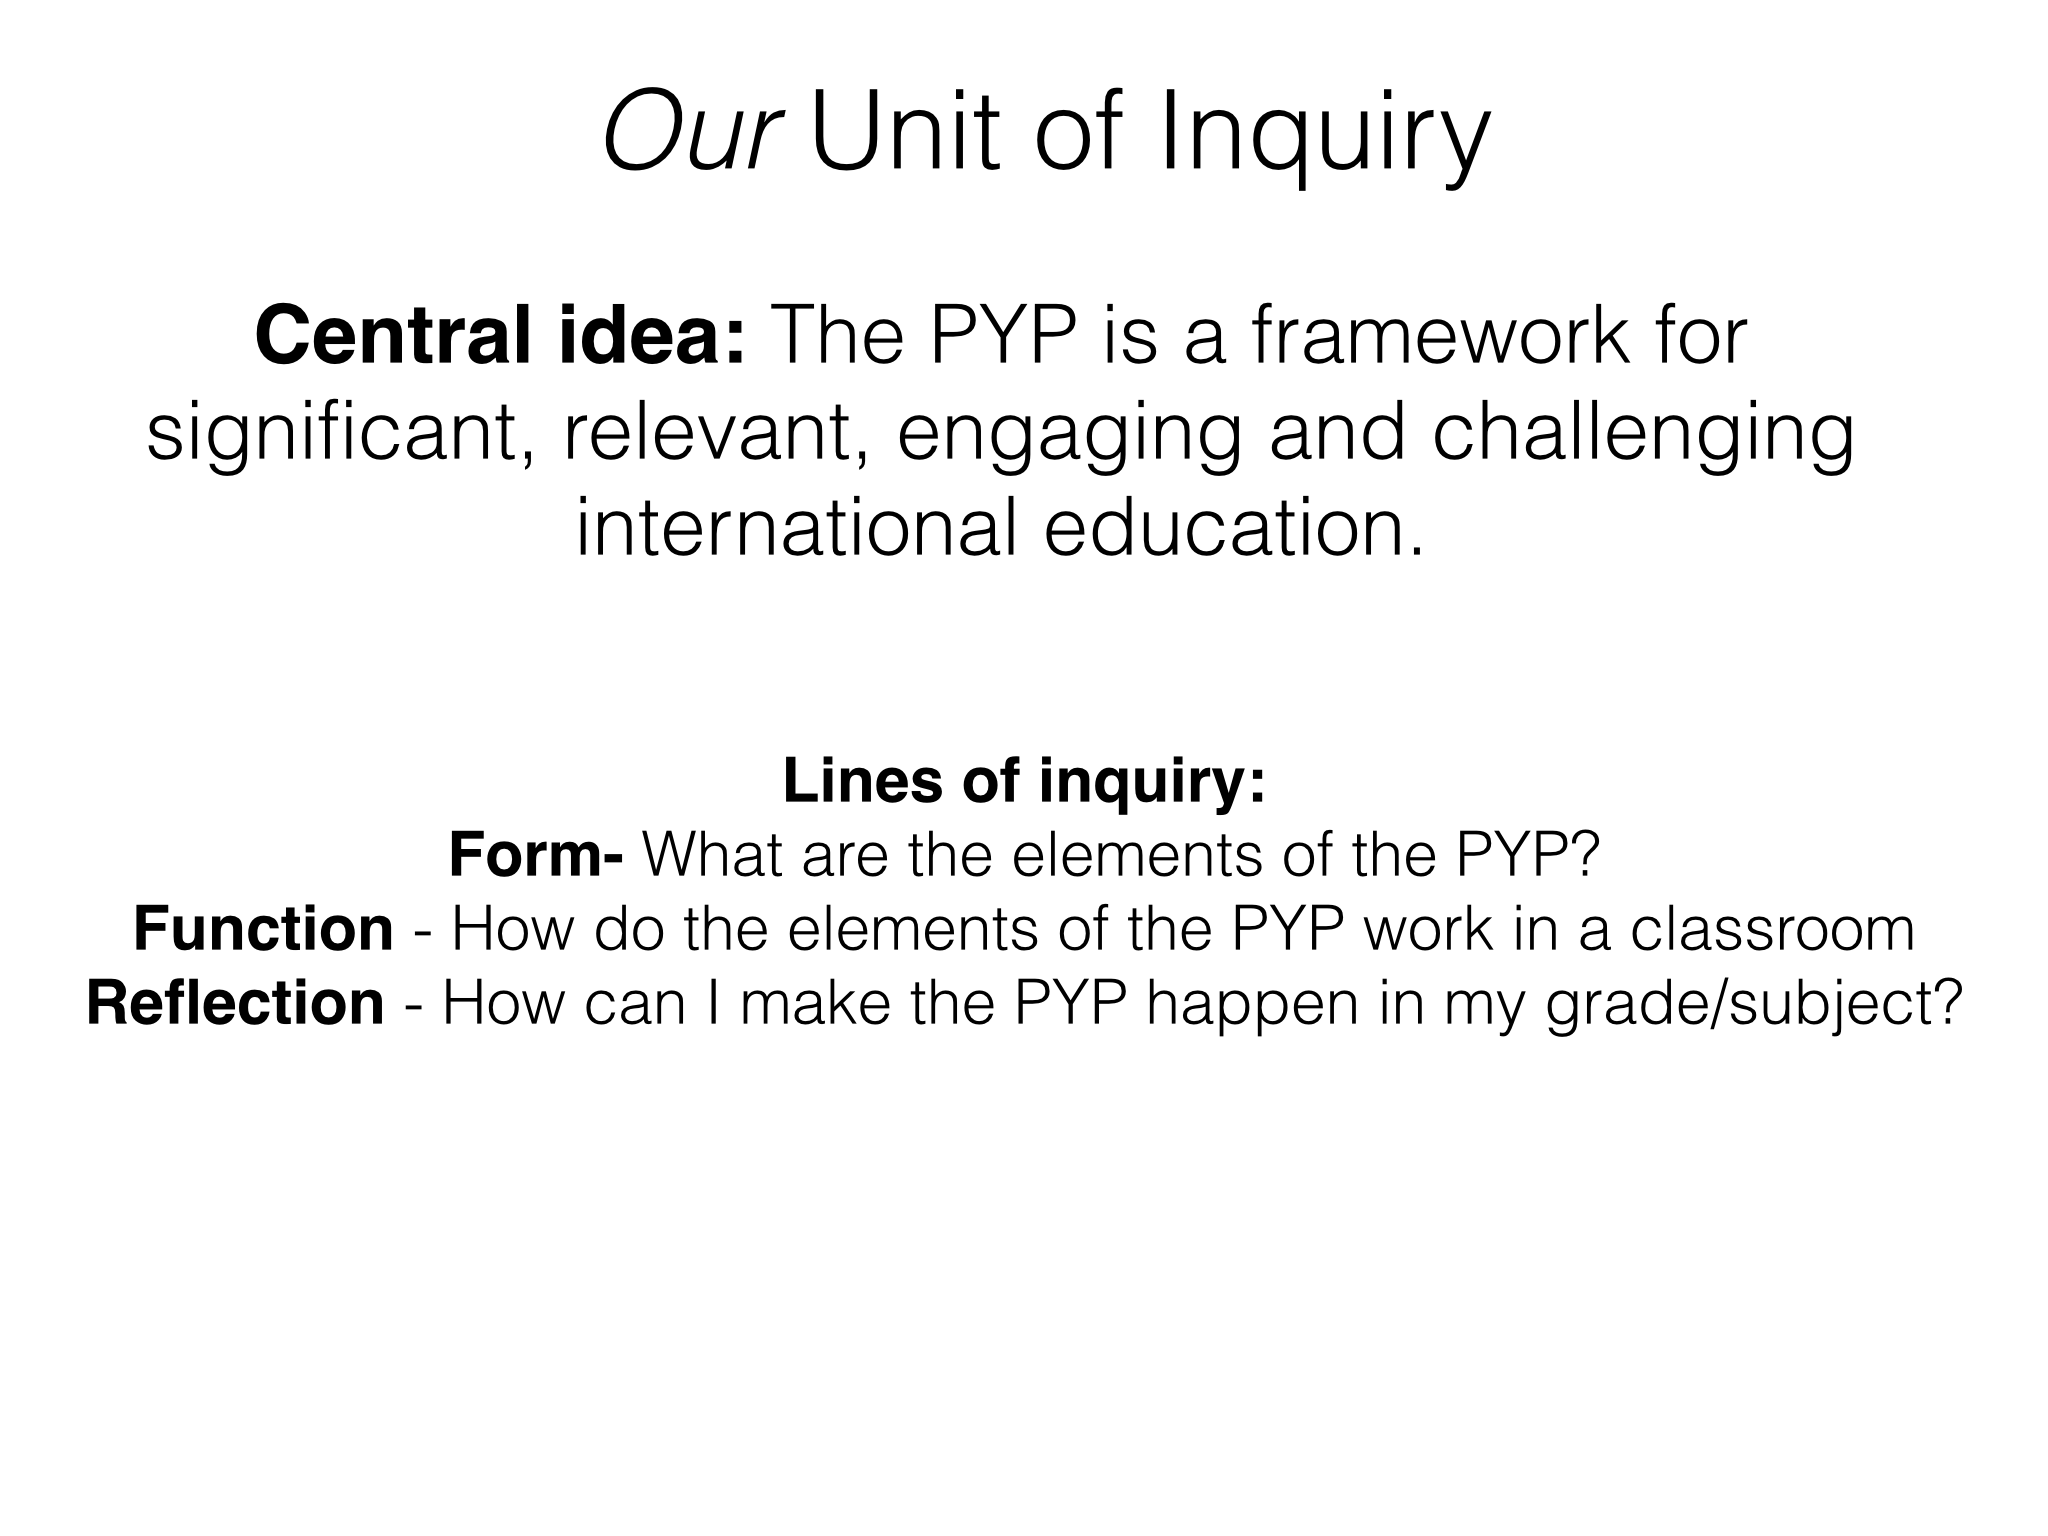 Pyp new staff induction as a unit of inquiry making good humans staff induction uoi altavistaventures Image collections